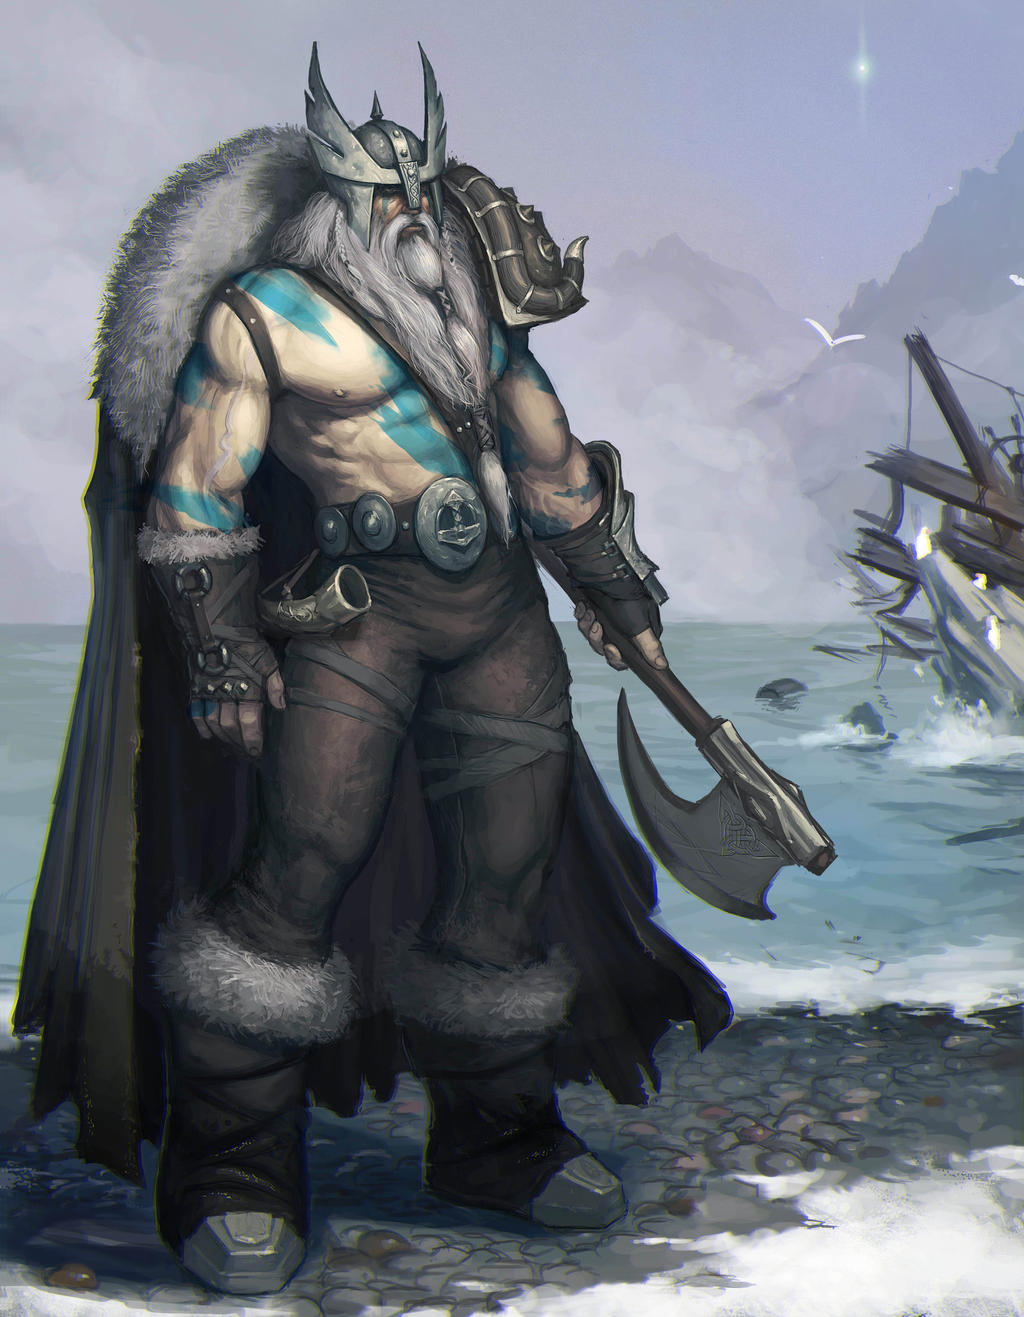 Viking by AlekseyBayura on DeviantArt